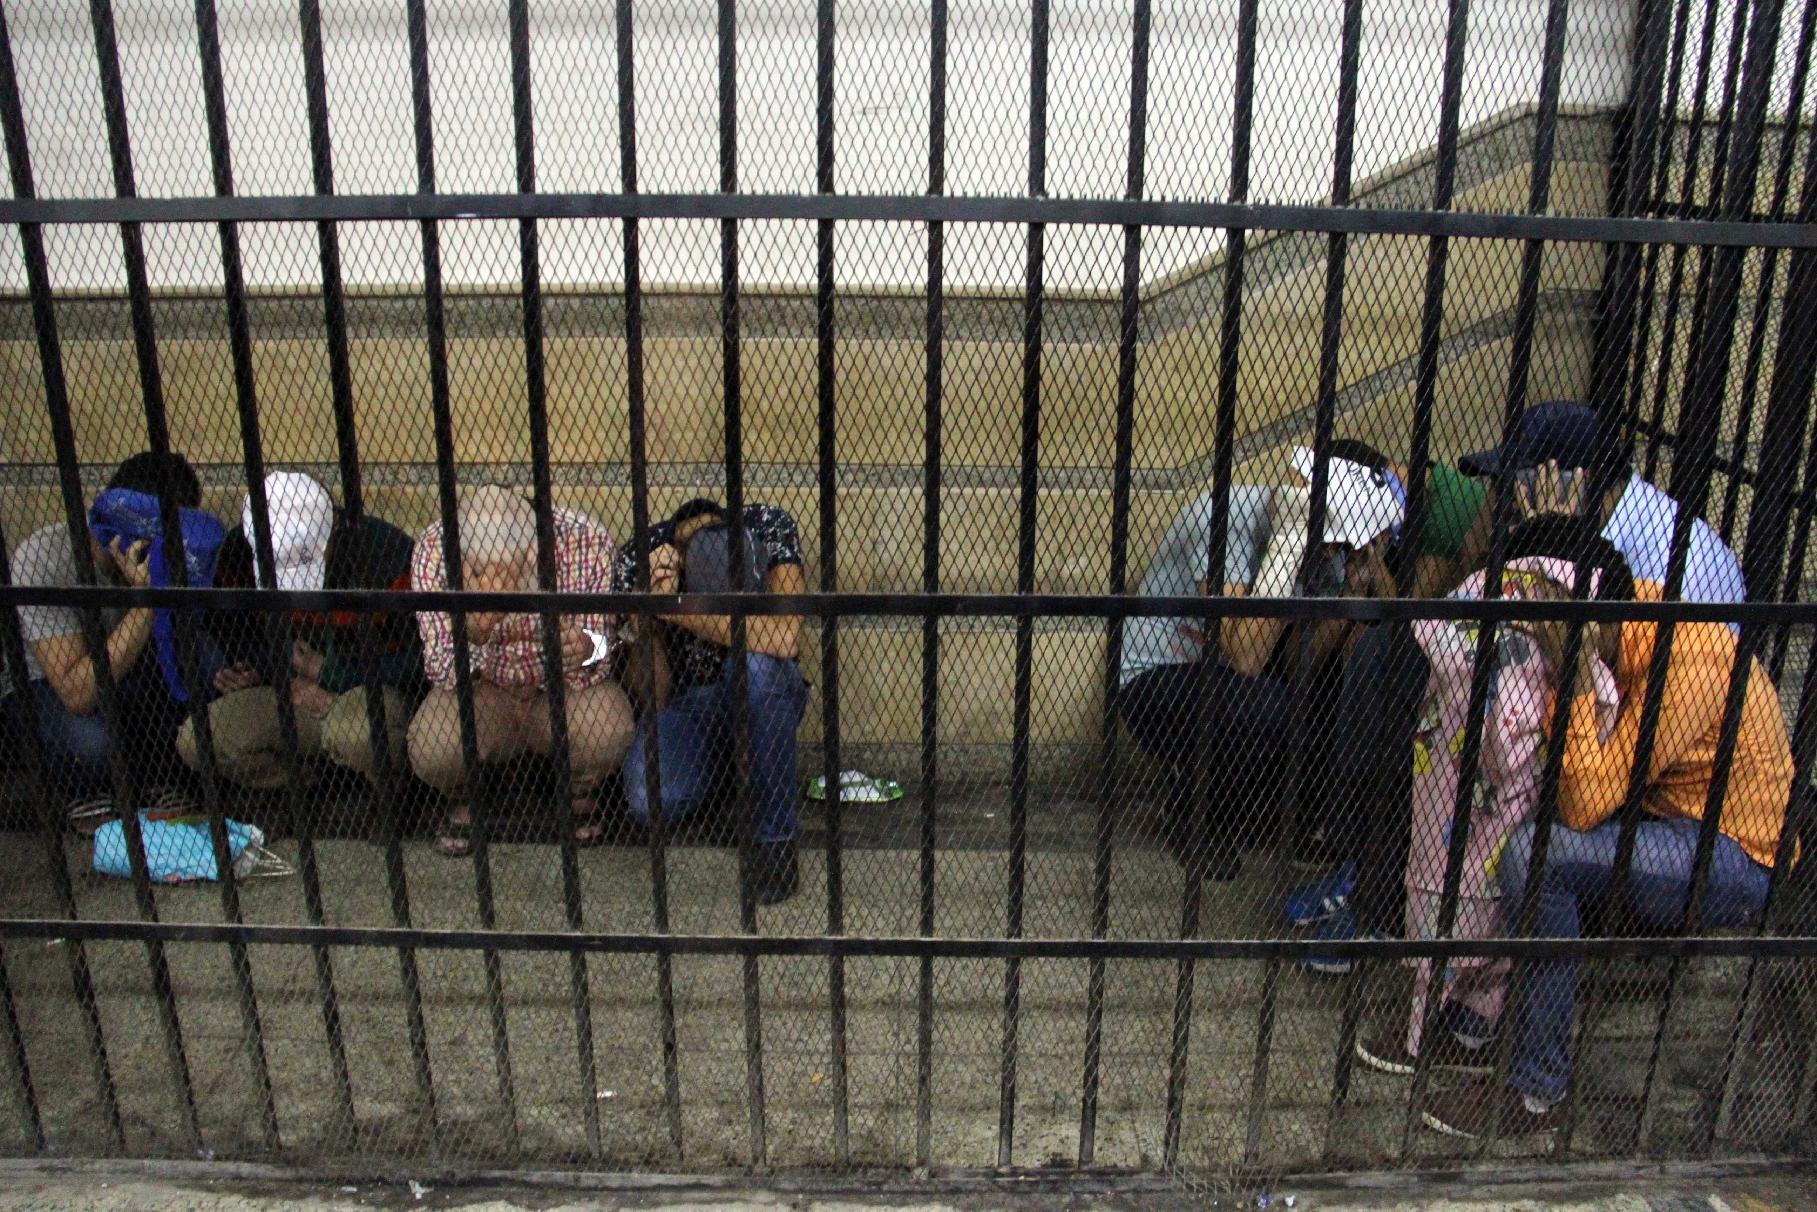 Eight Egyptian men on trial for doing a video prosecutors claimed was of a gay wedding hide their identities as they sit in the defendents' cage during their trial in Cairo on November 1, 2014 (AFP Photo/)